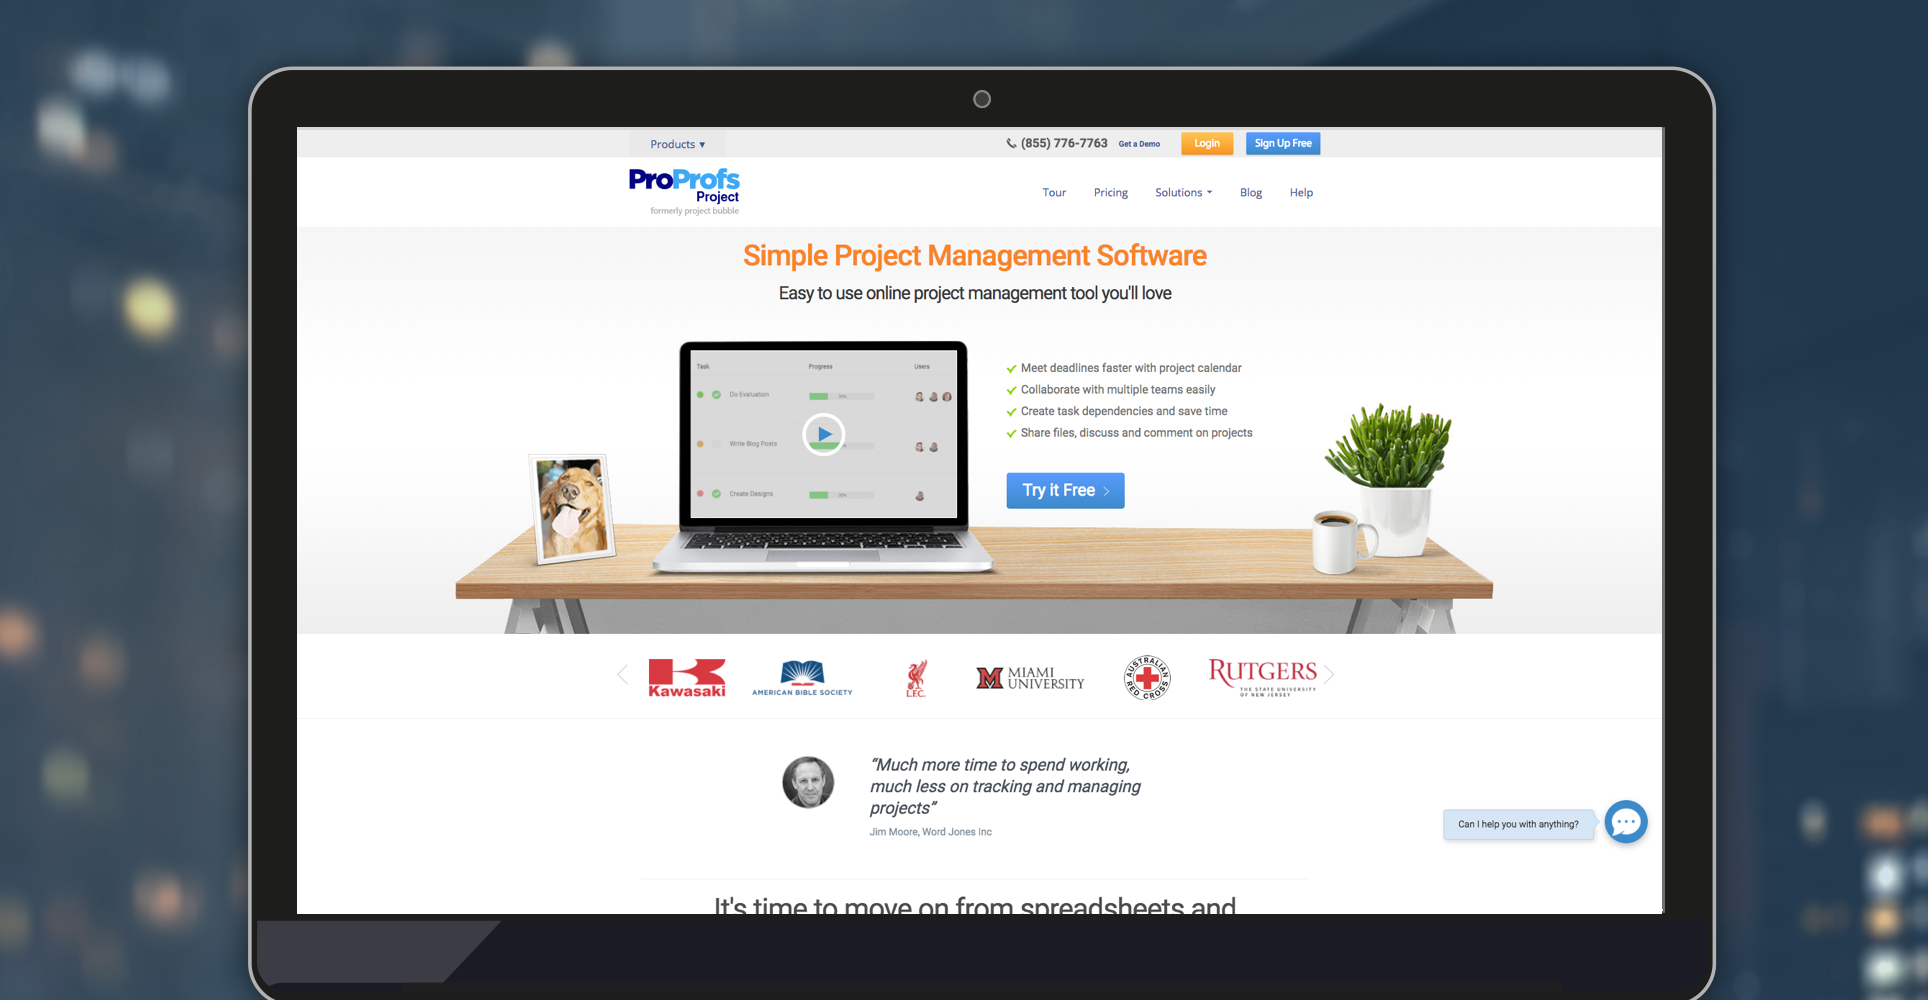 proprofs project management tools